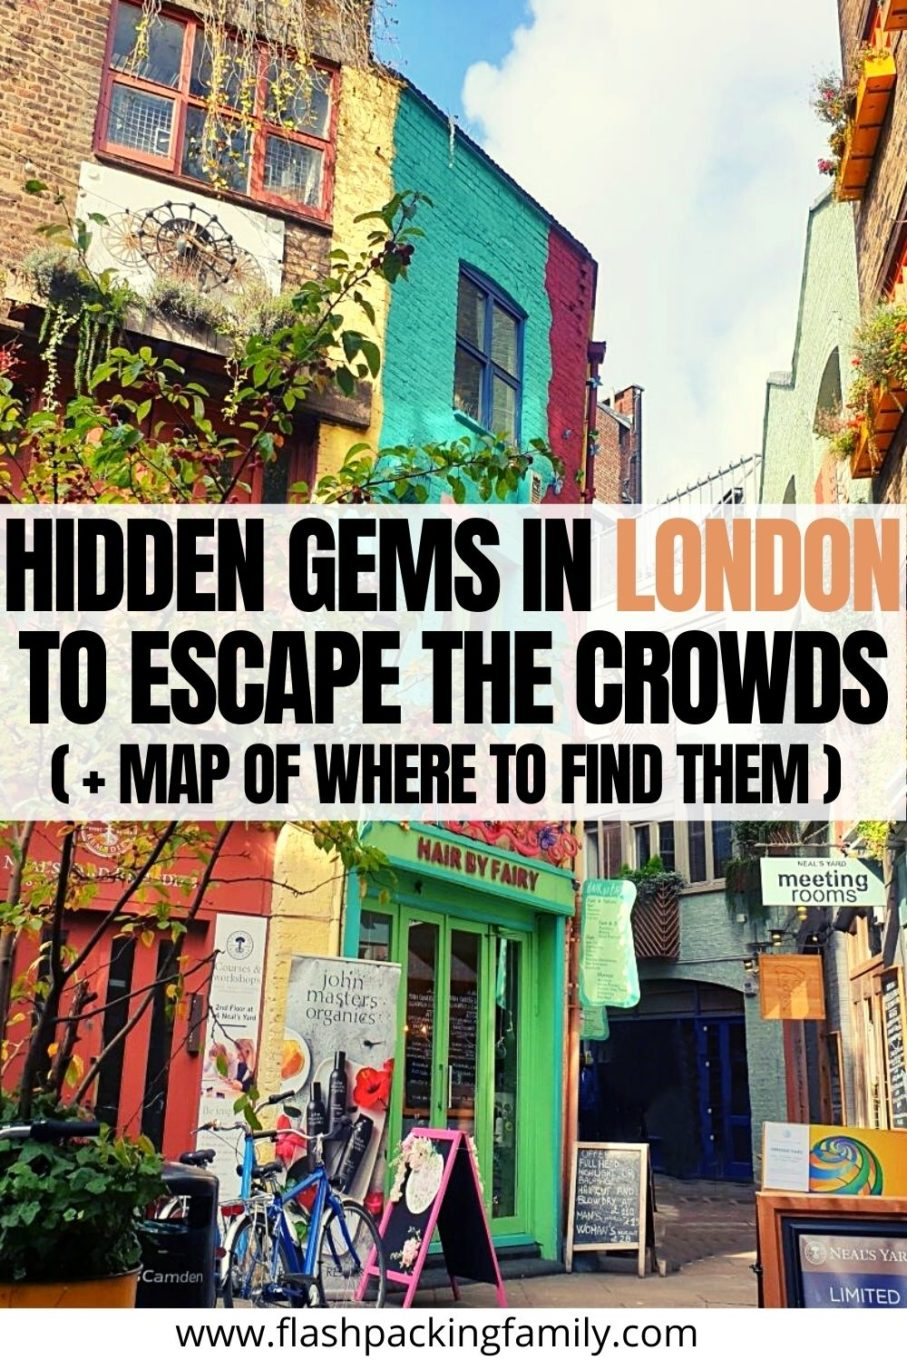 Hidden gems in London to Escape the Crowds (+Map)